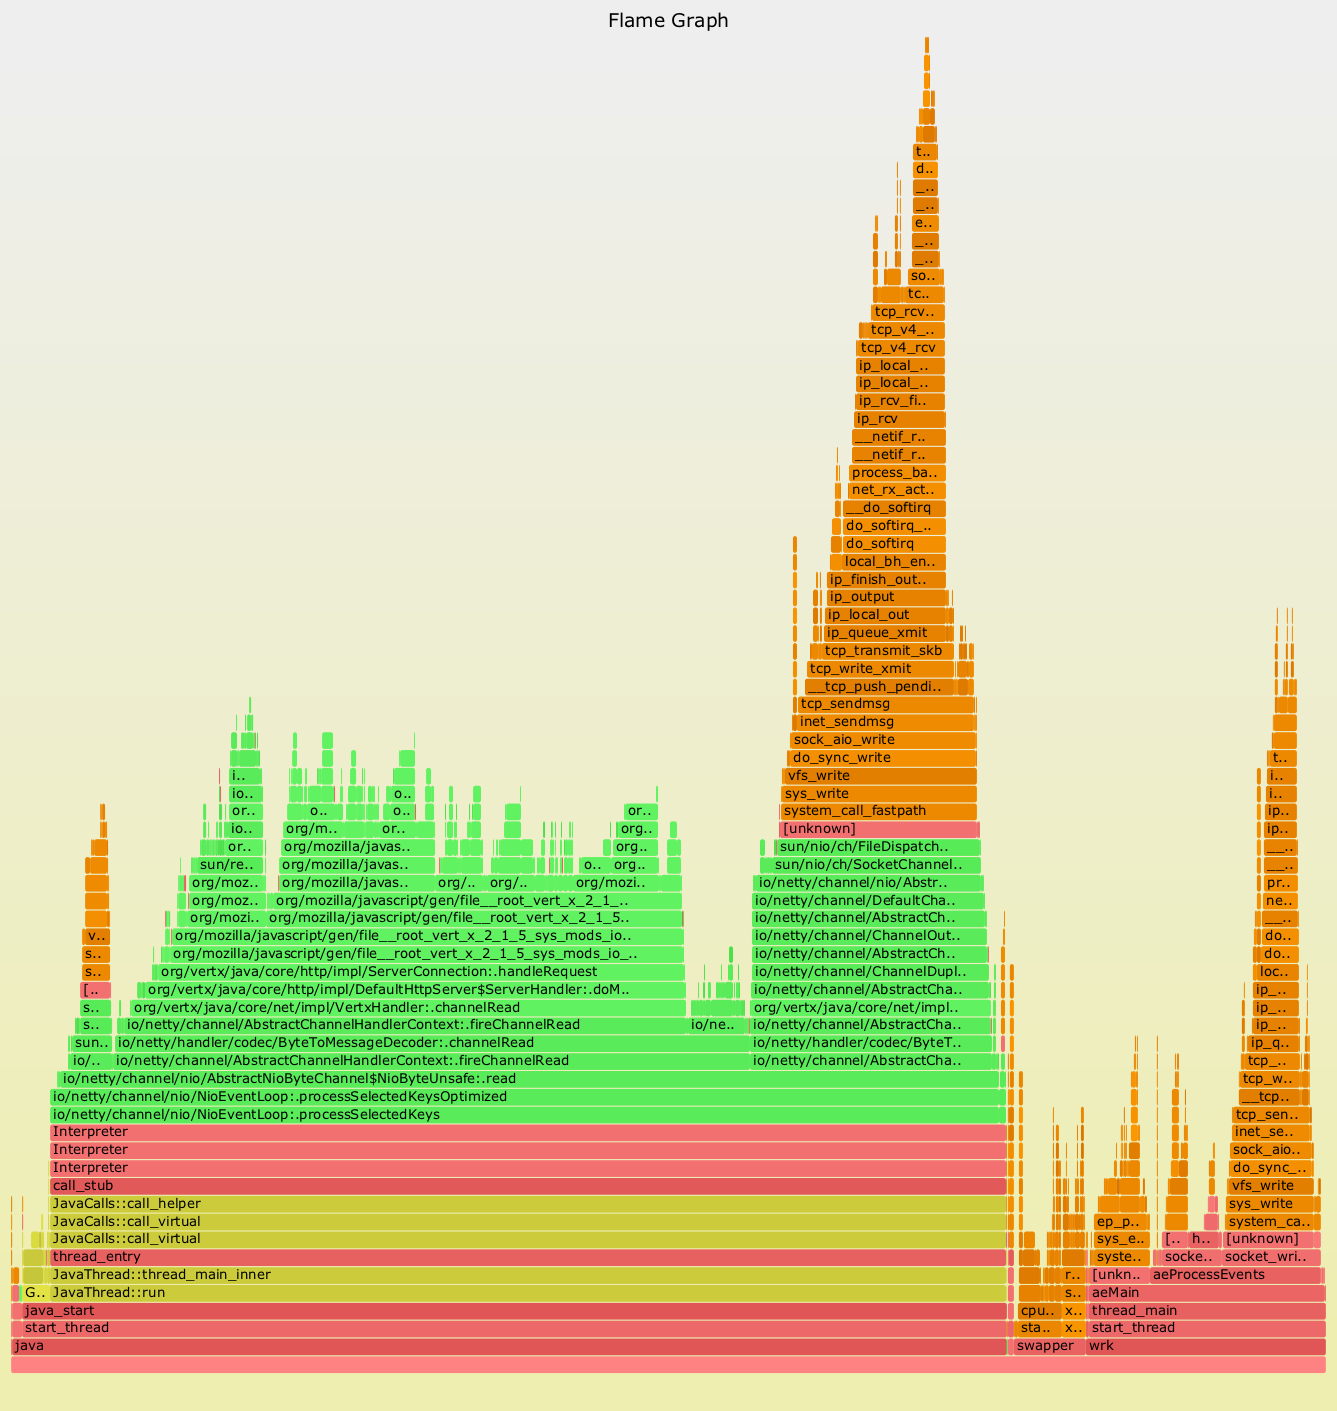 Mixed-mode FlameGraph spanning kernel and user code